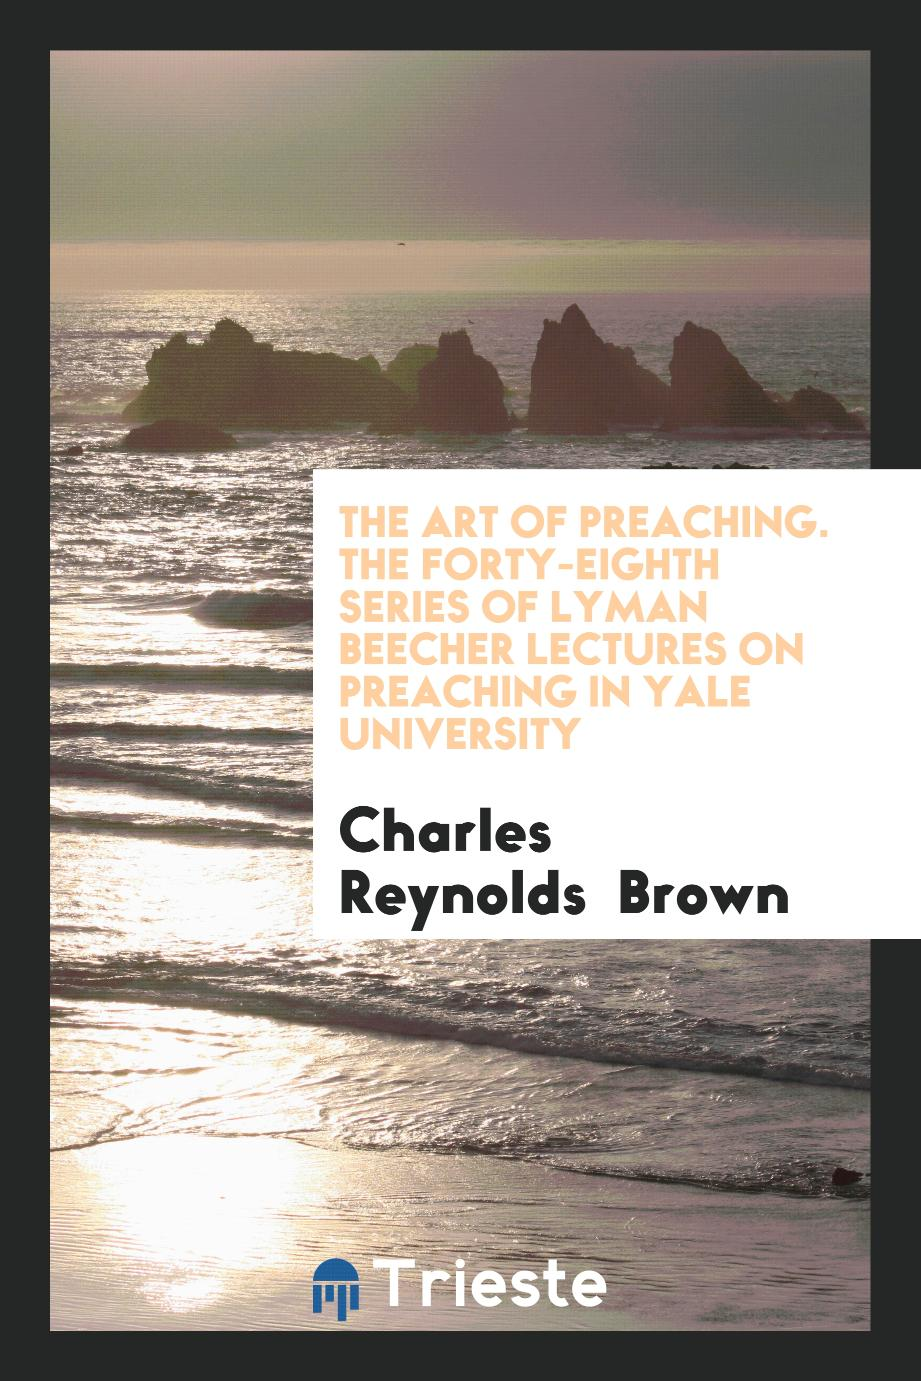 The Art of Preaching. The Forty-Eighth Series of Lyman Beecher Lectures on Preaching in Yale University